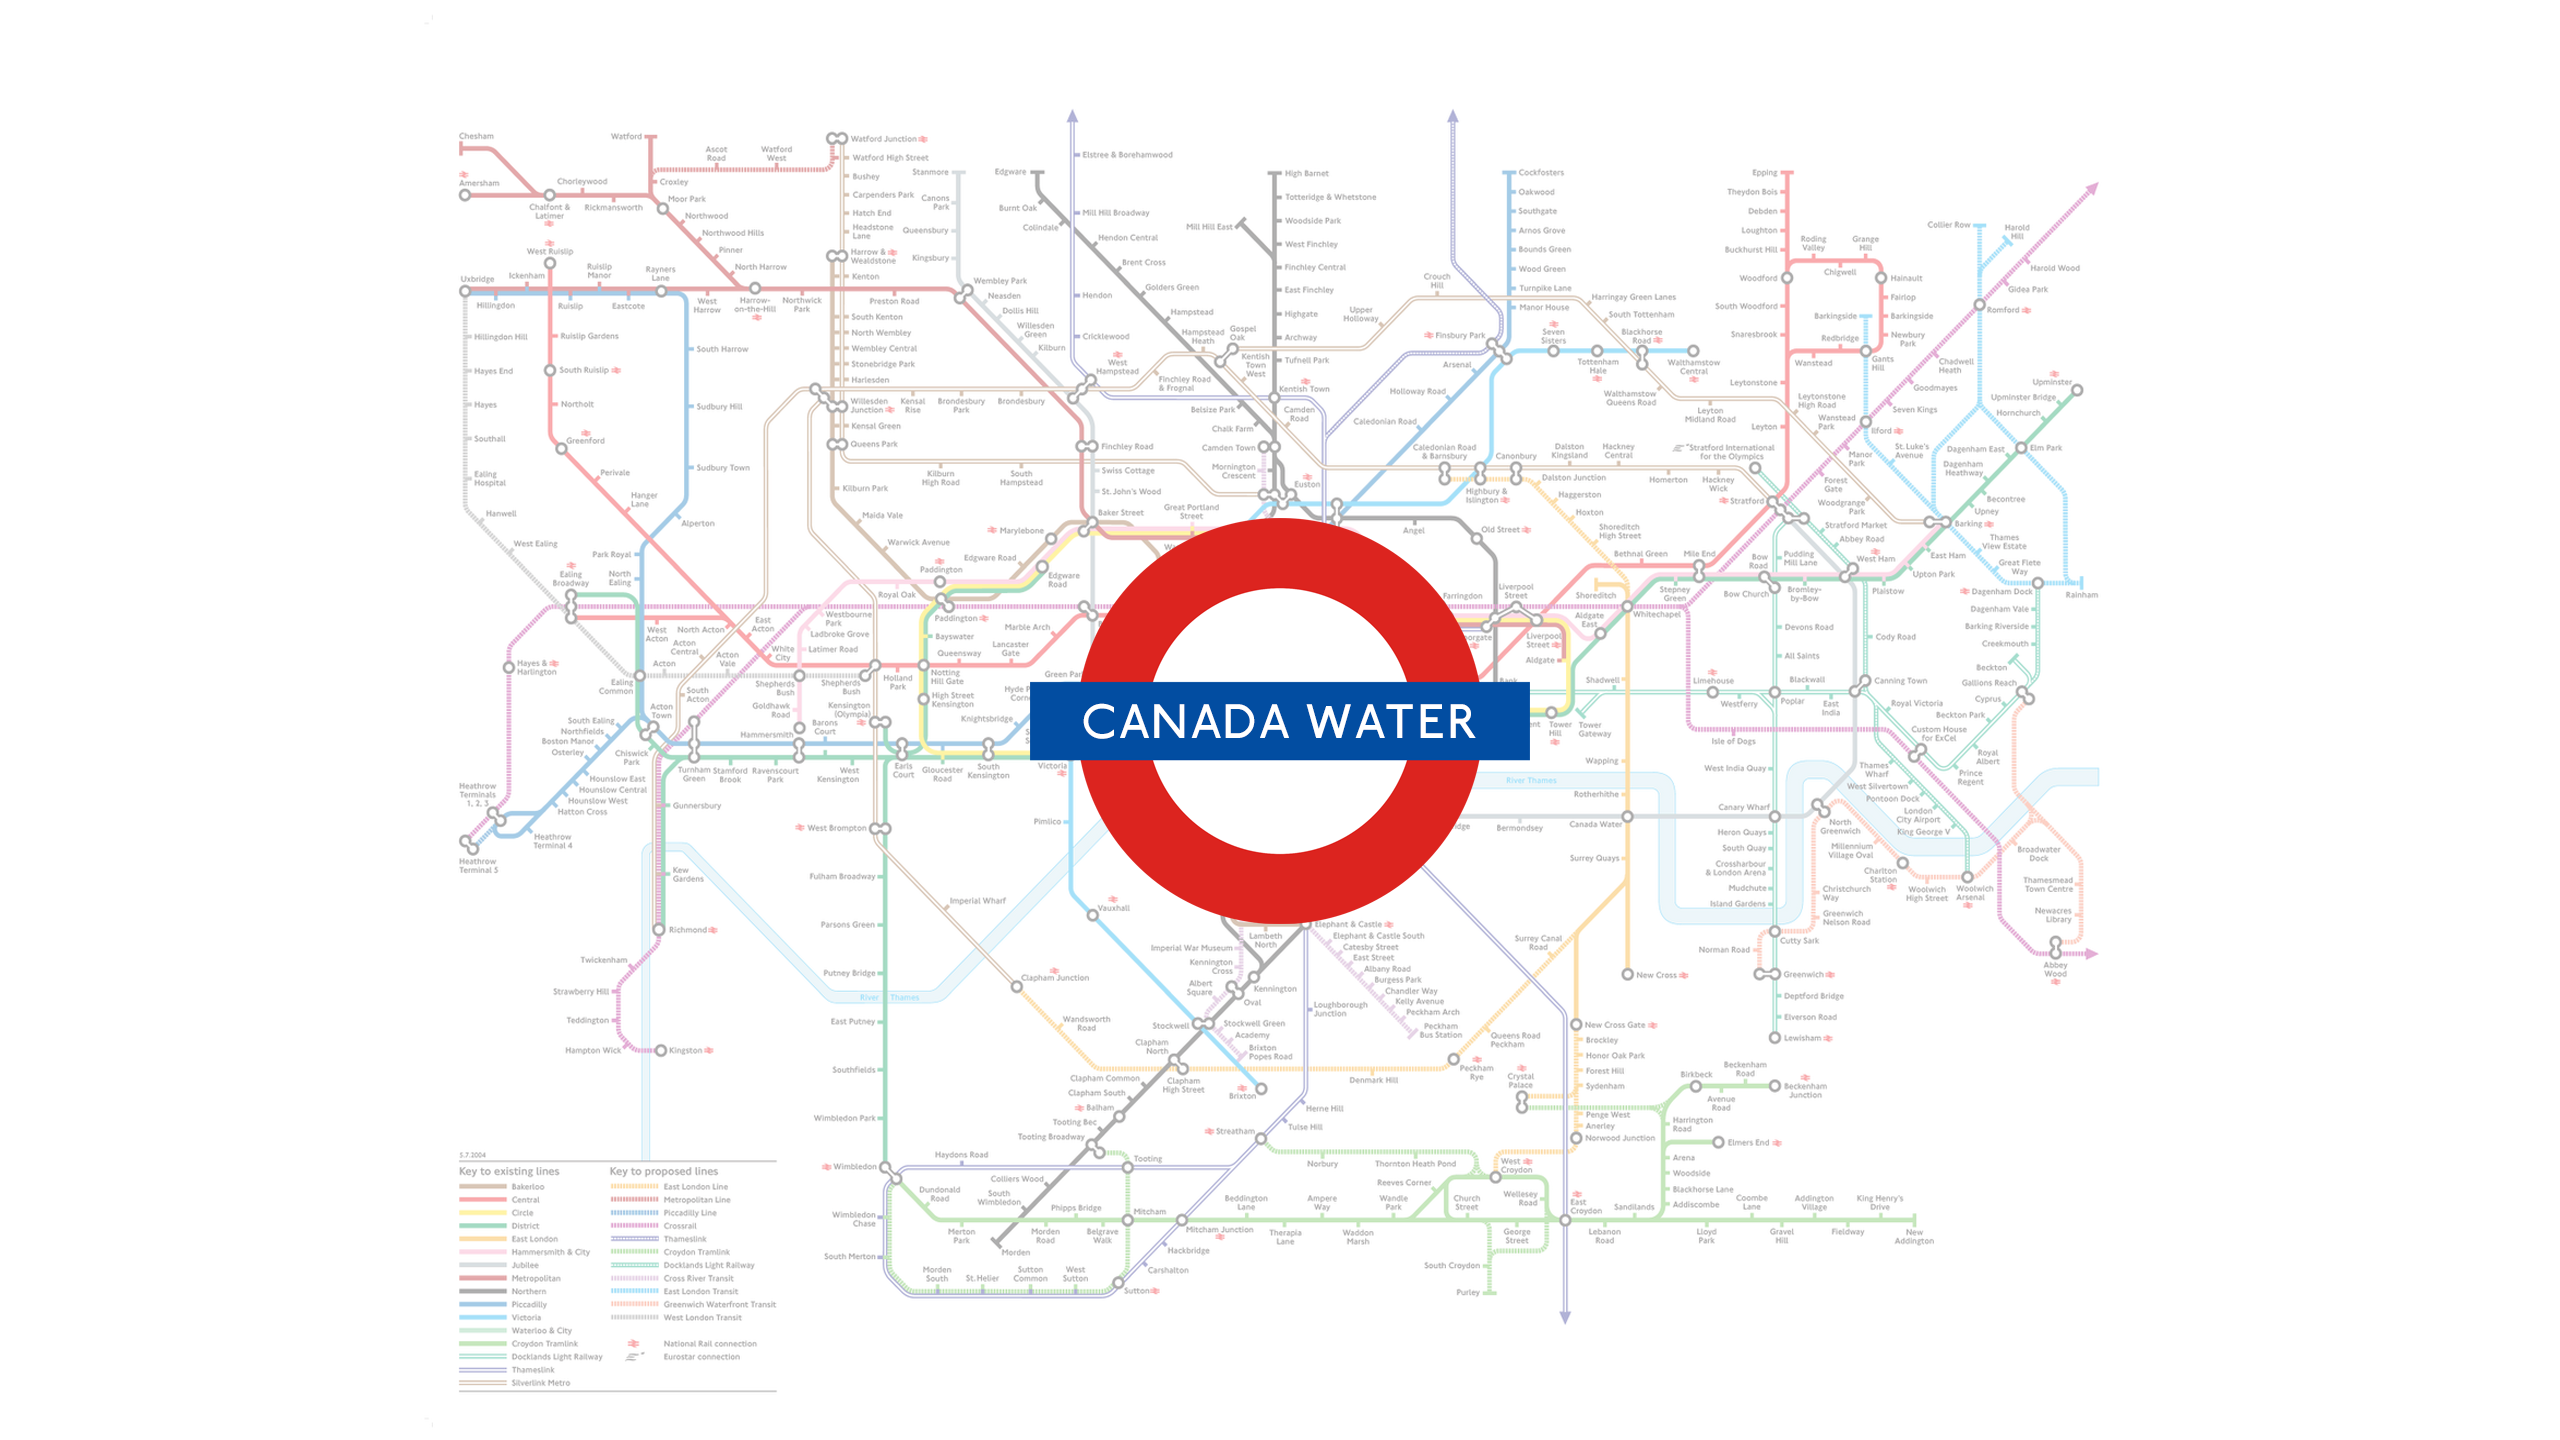 Canada Water (Map)